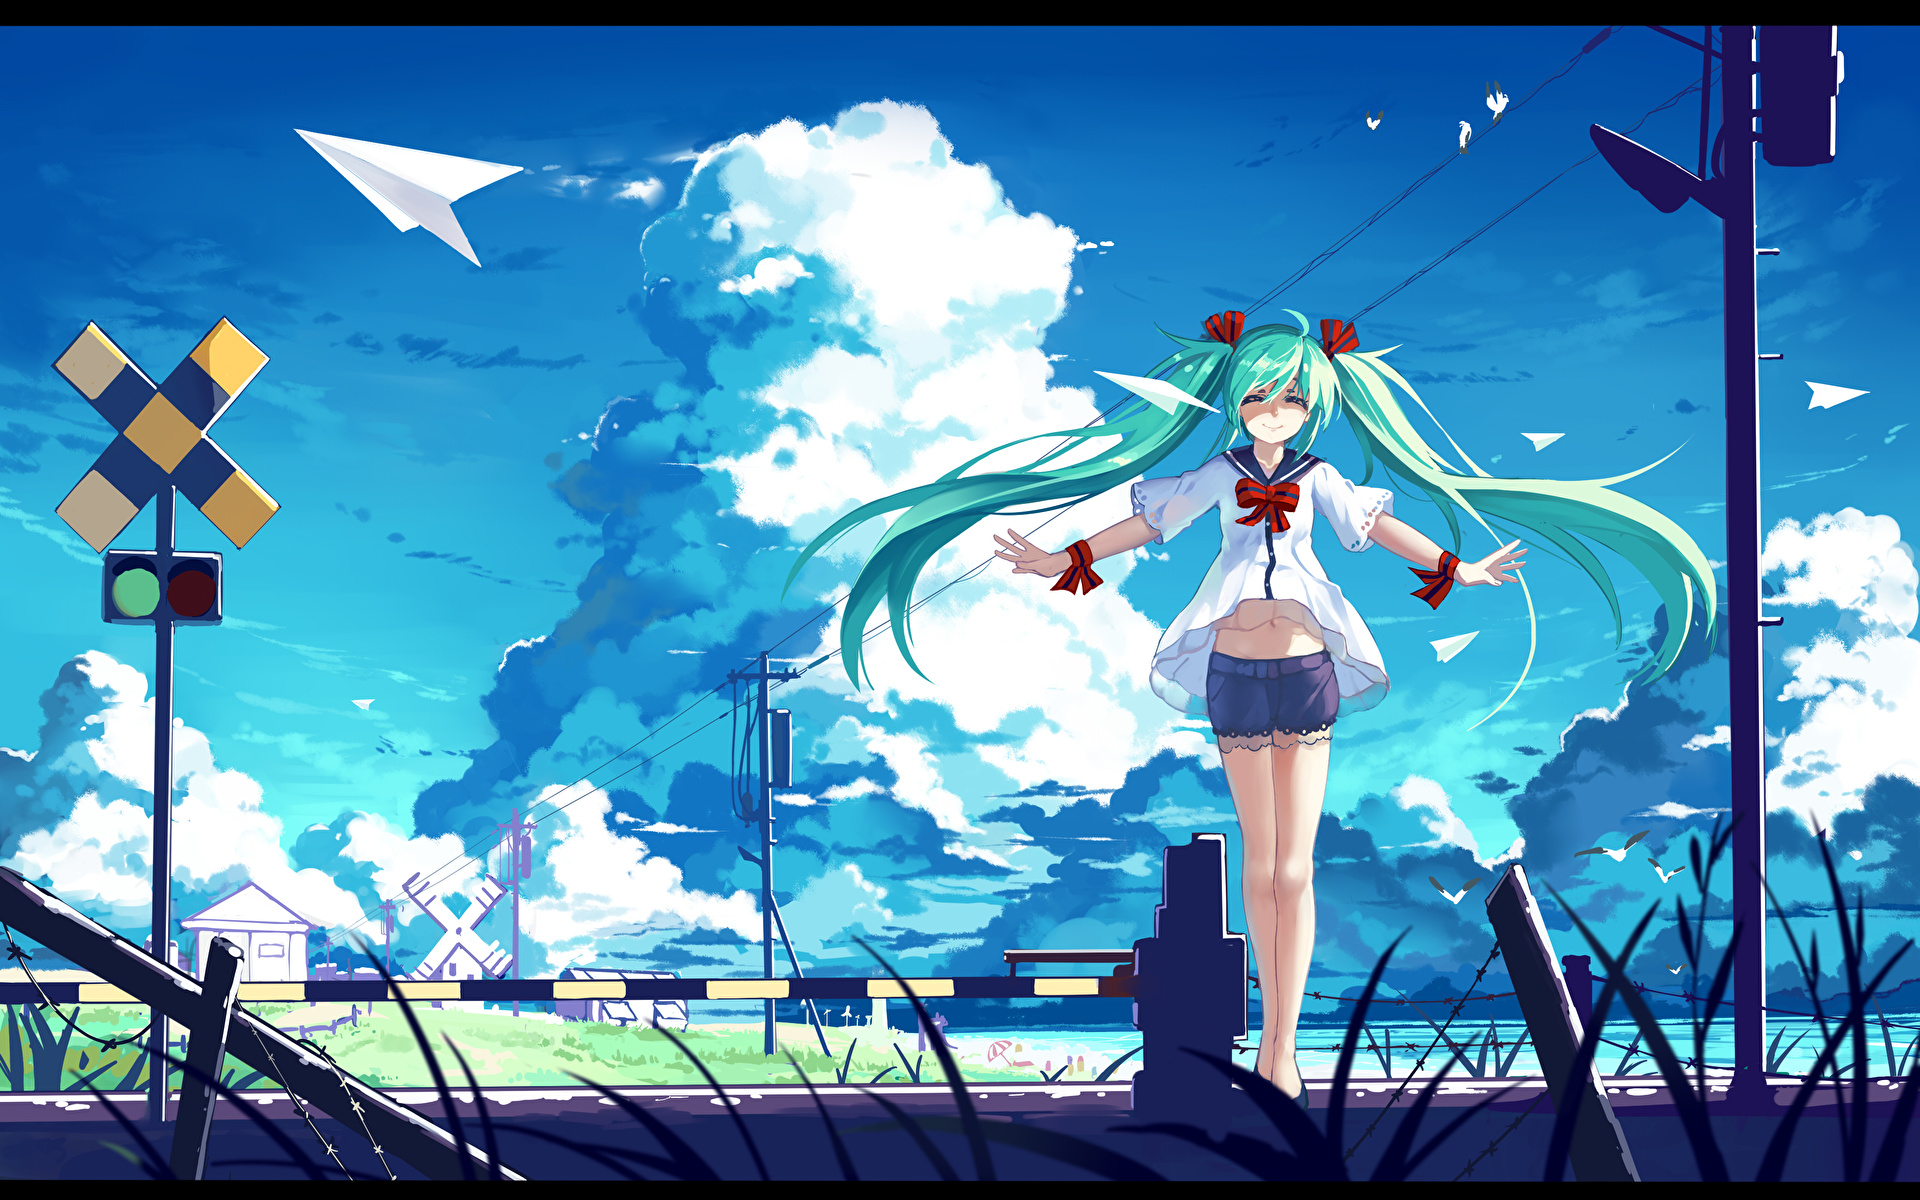 Picture Vocaloid Hatsune Miku Haraguroi You Anime Young 19x10